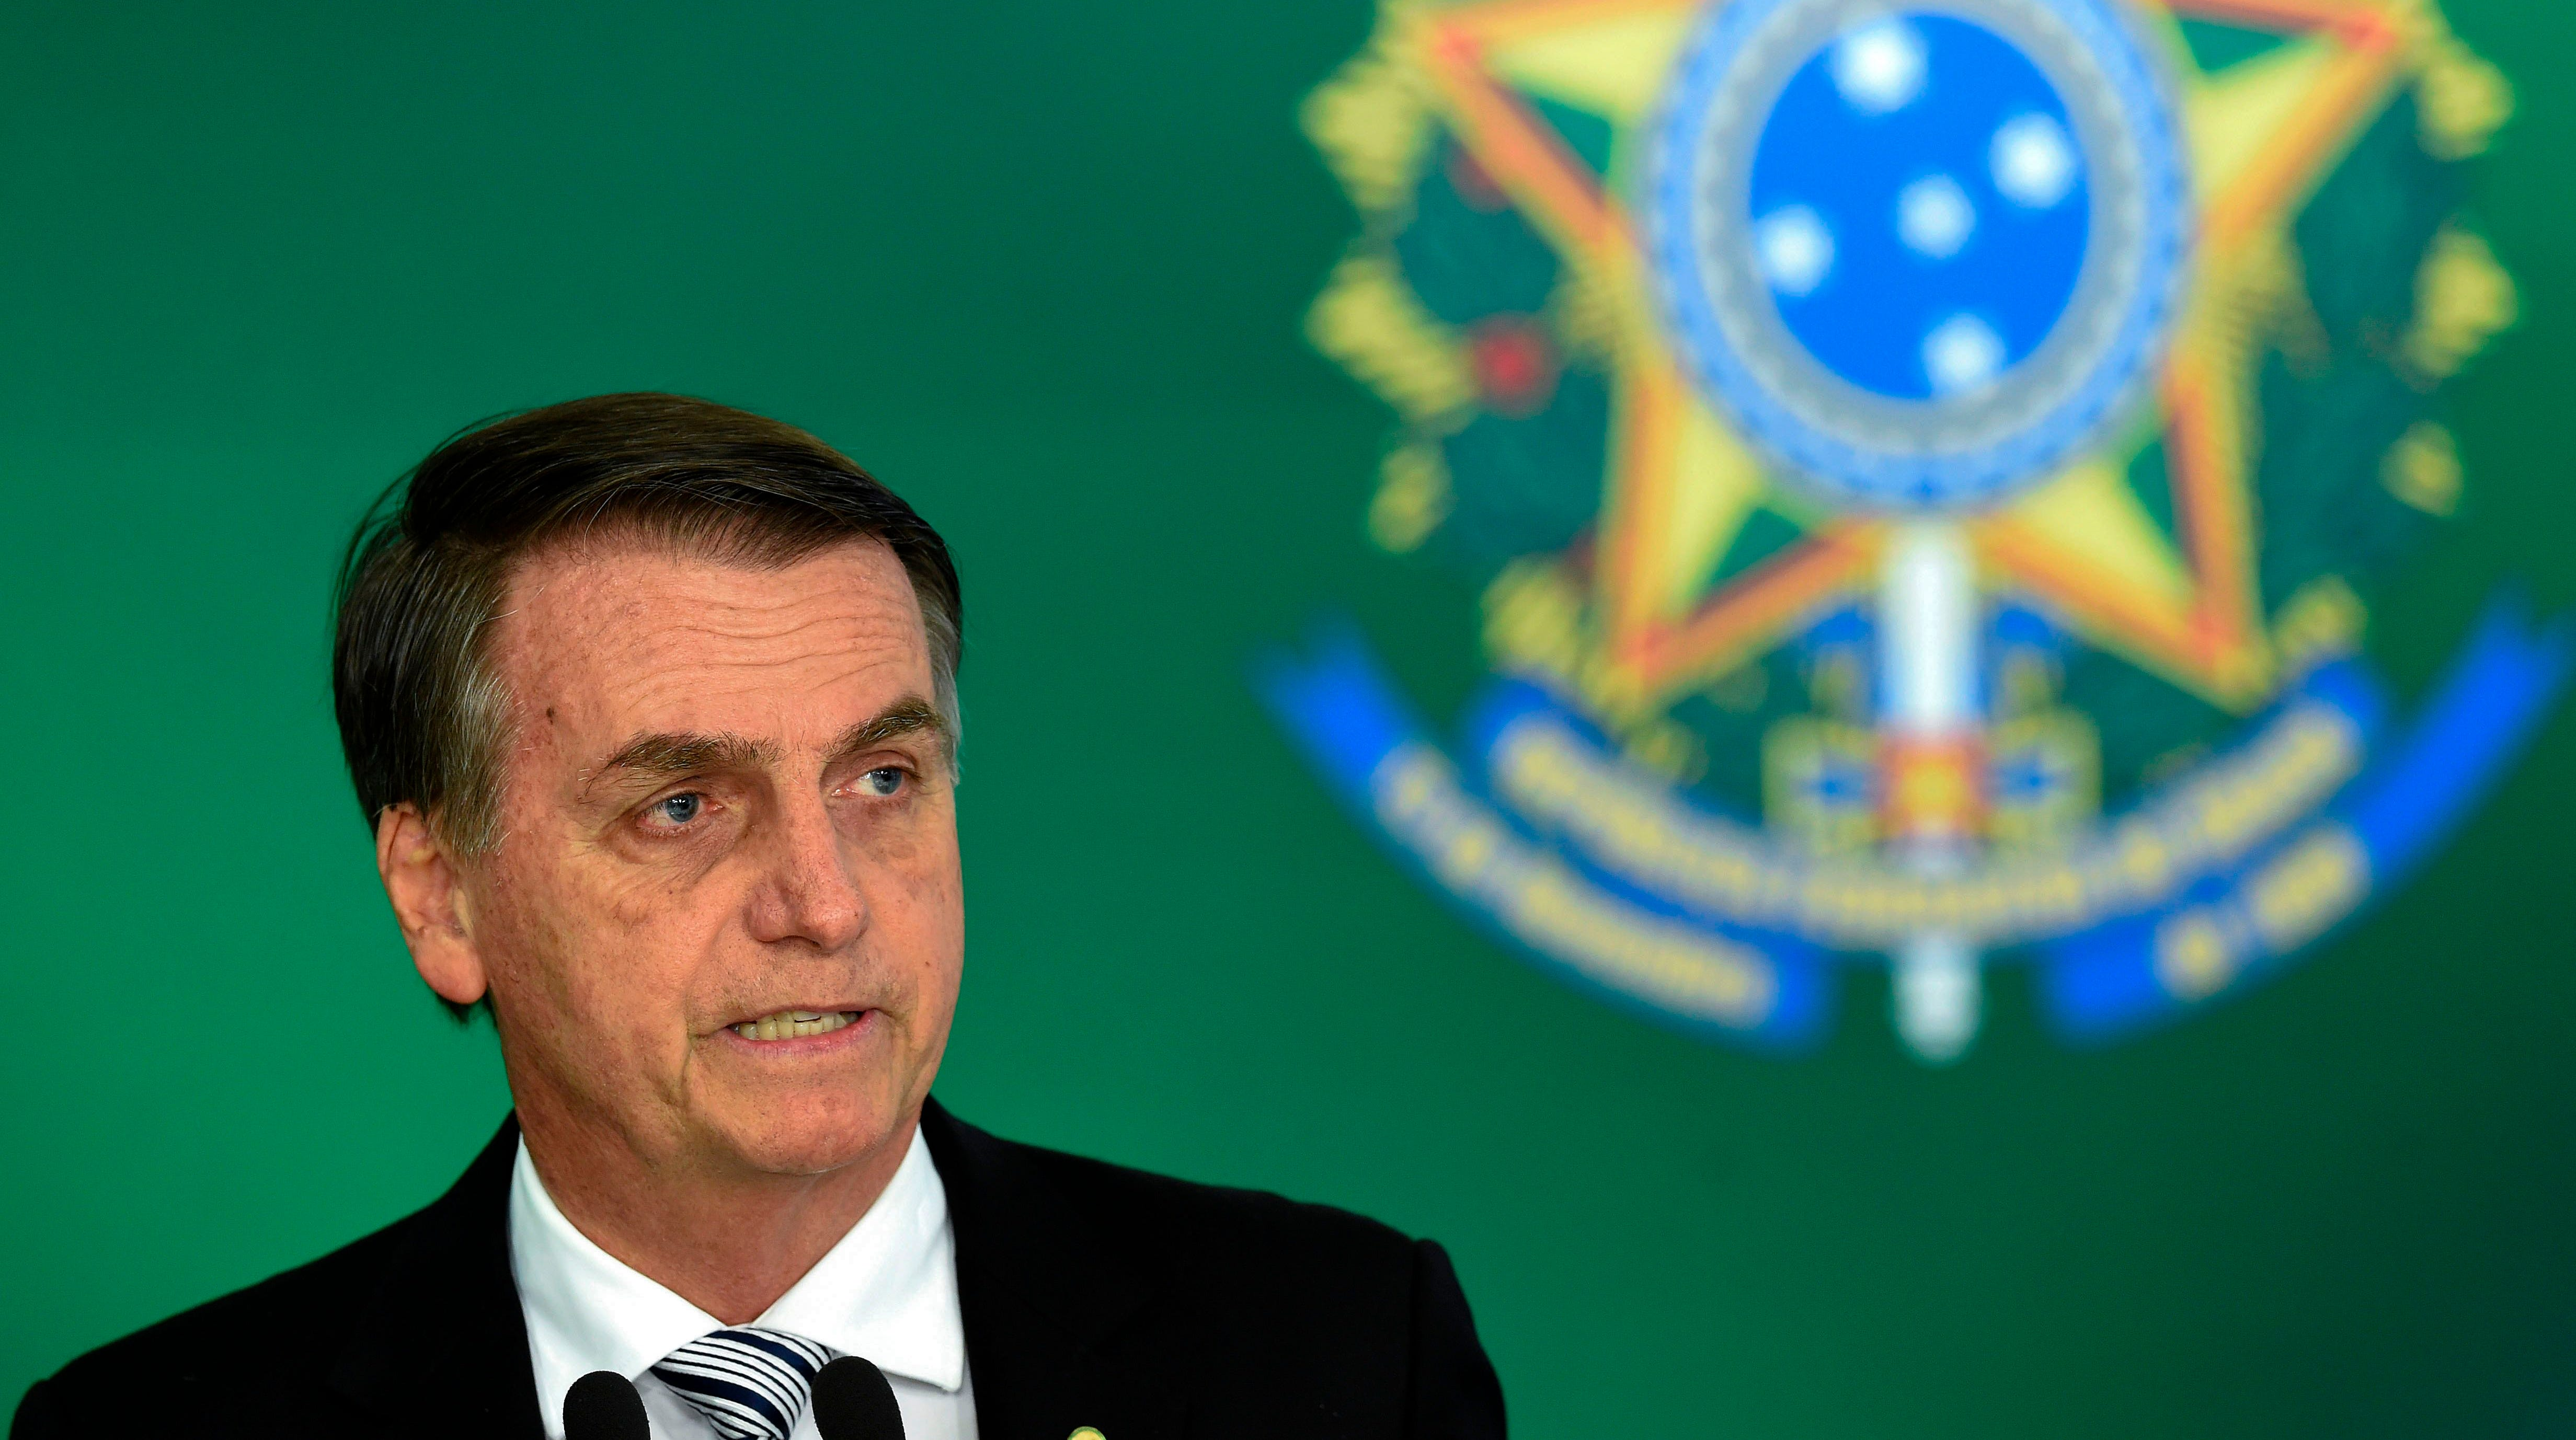 Brazilian president-elect Jair Bolsonaro delivers a joint press conference with Brazilian President Michel Temer (out of frame) after a meeting in Brasilia on Nov. 7, 2018.